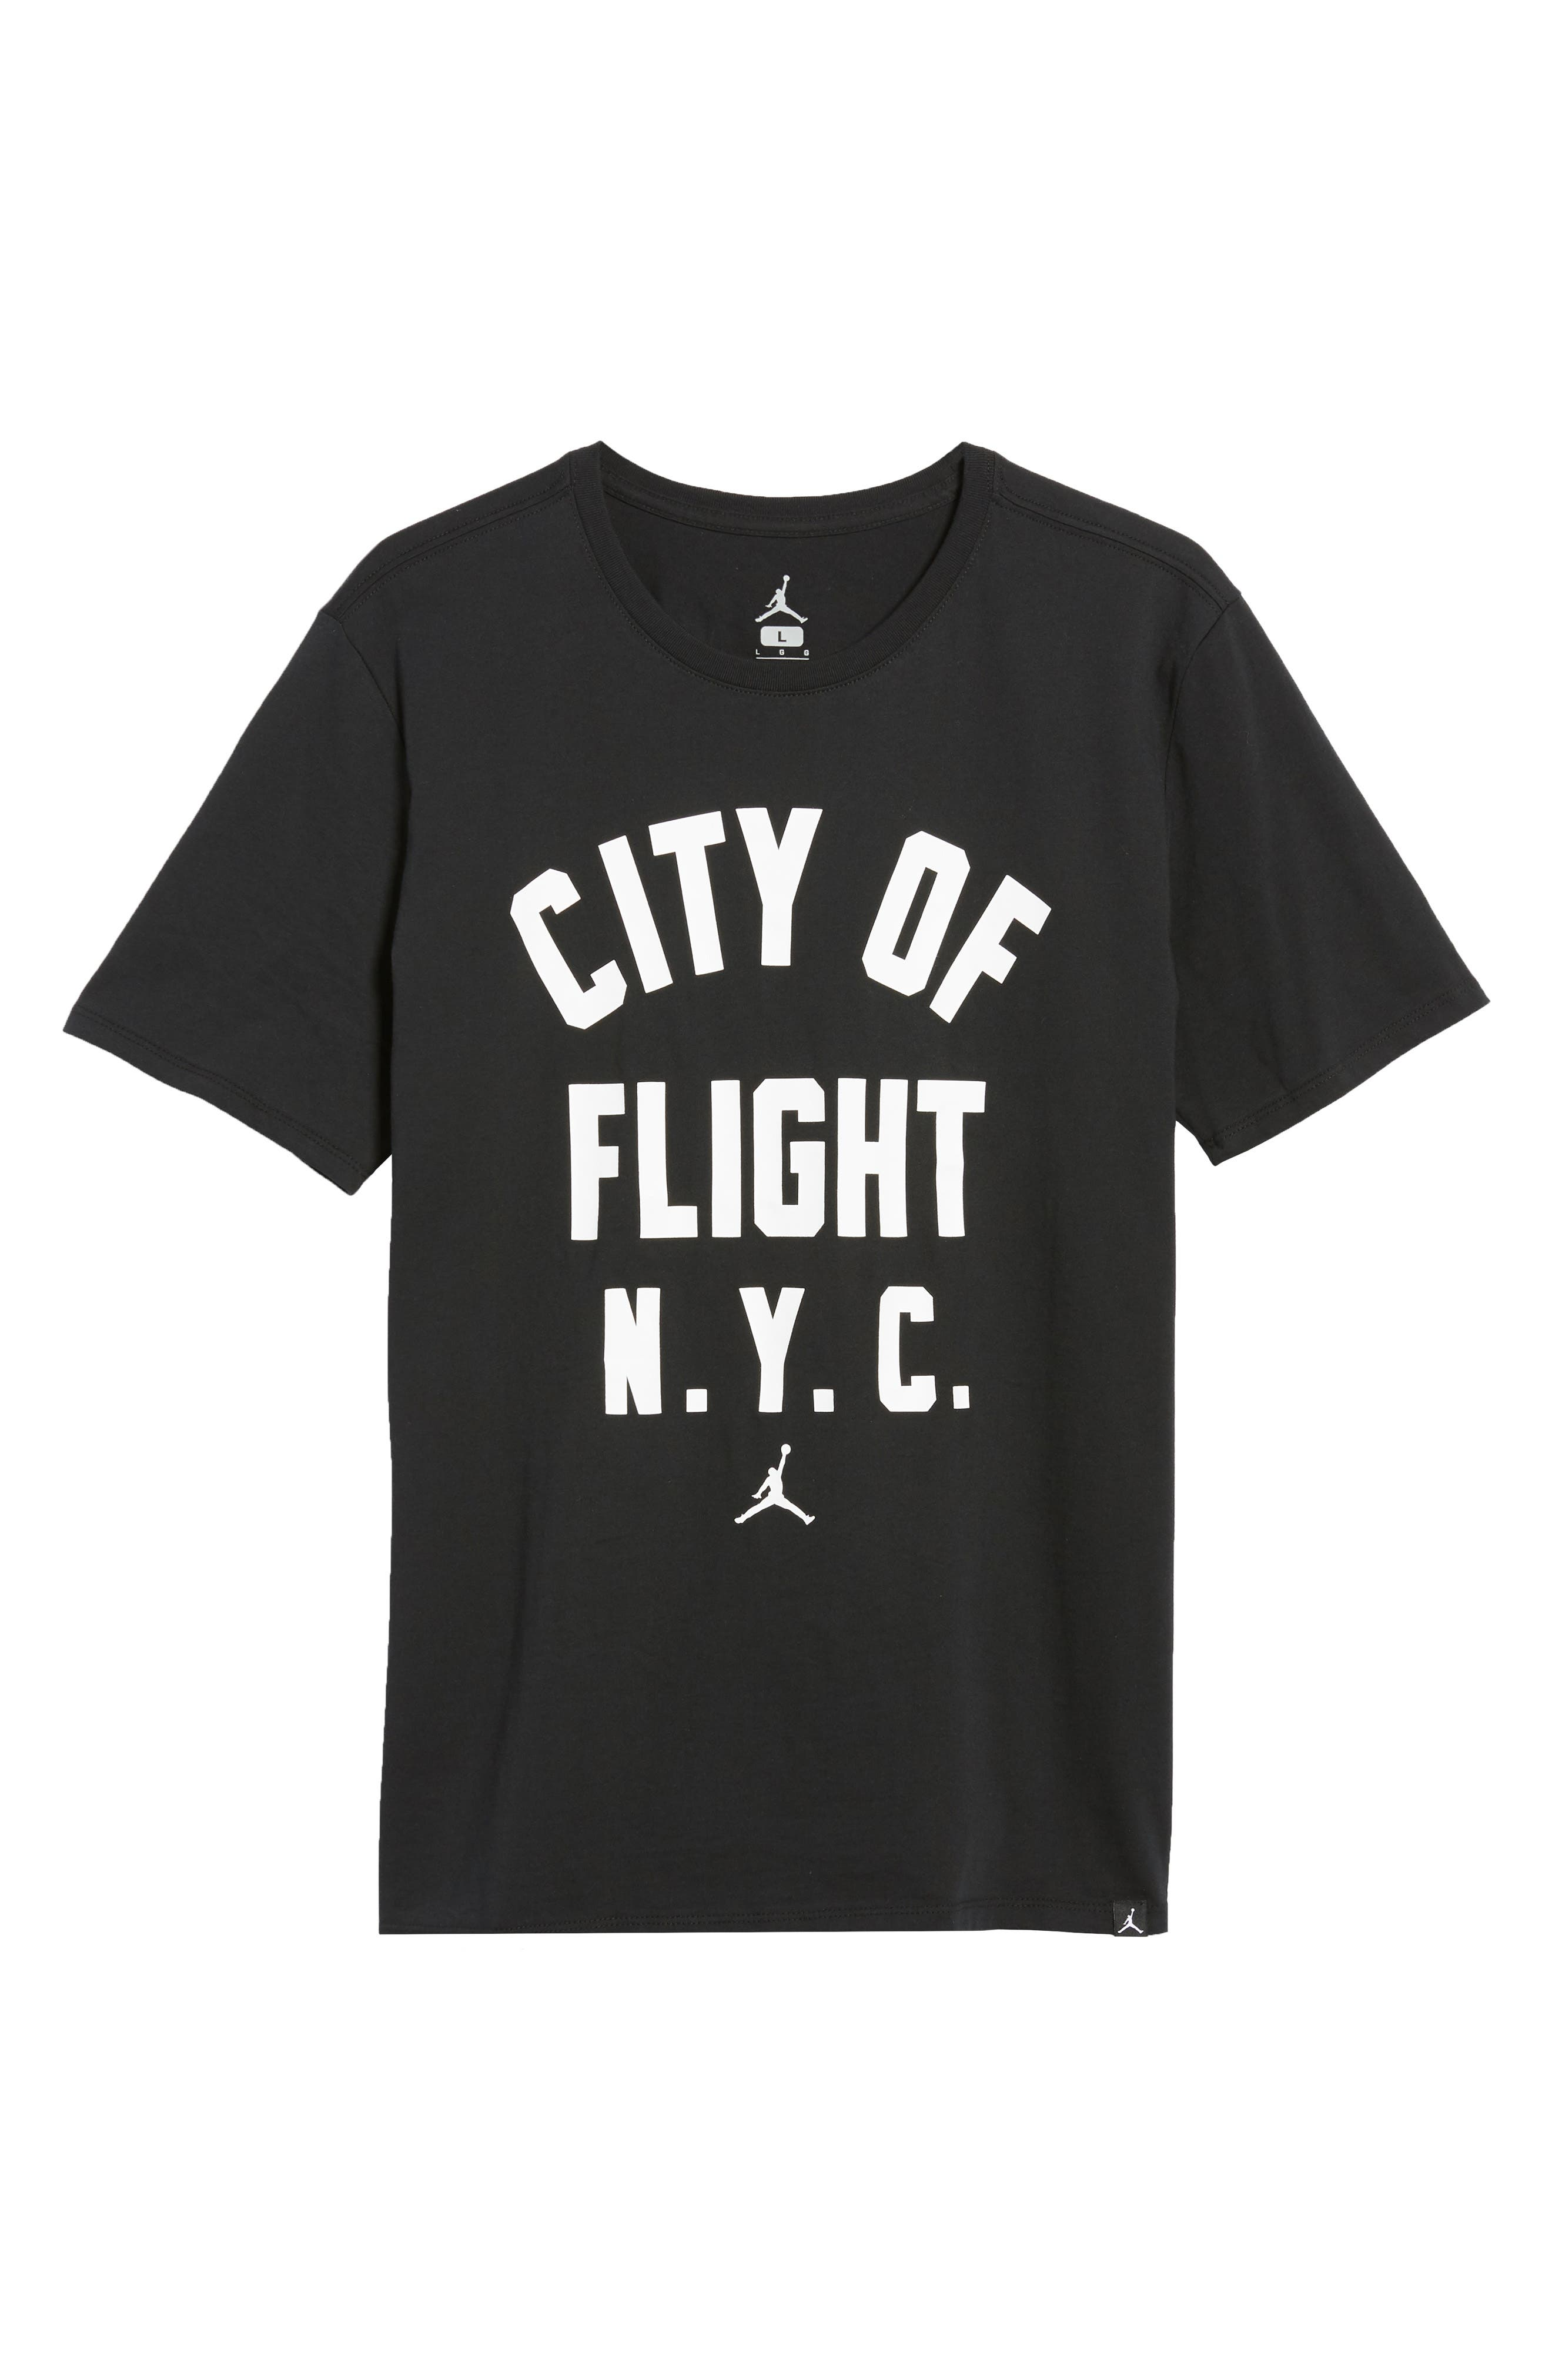 Sportswear City of Flight T-Shirt,                             Alternate thumbnail 6, color,                             011